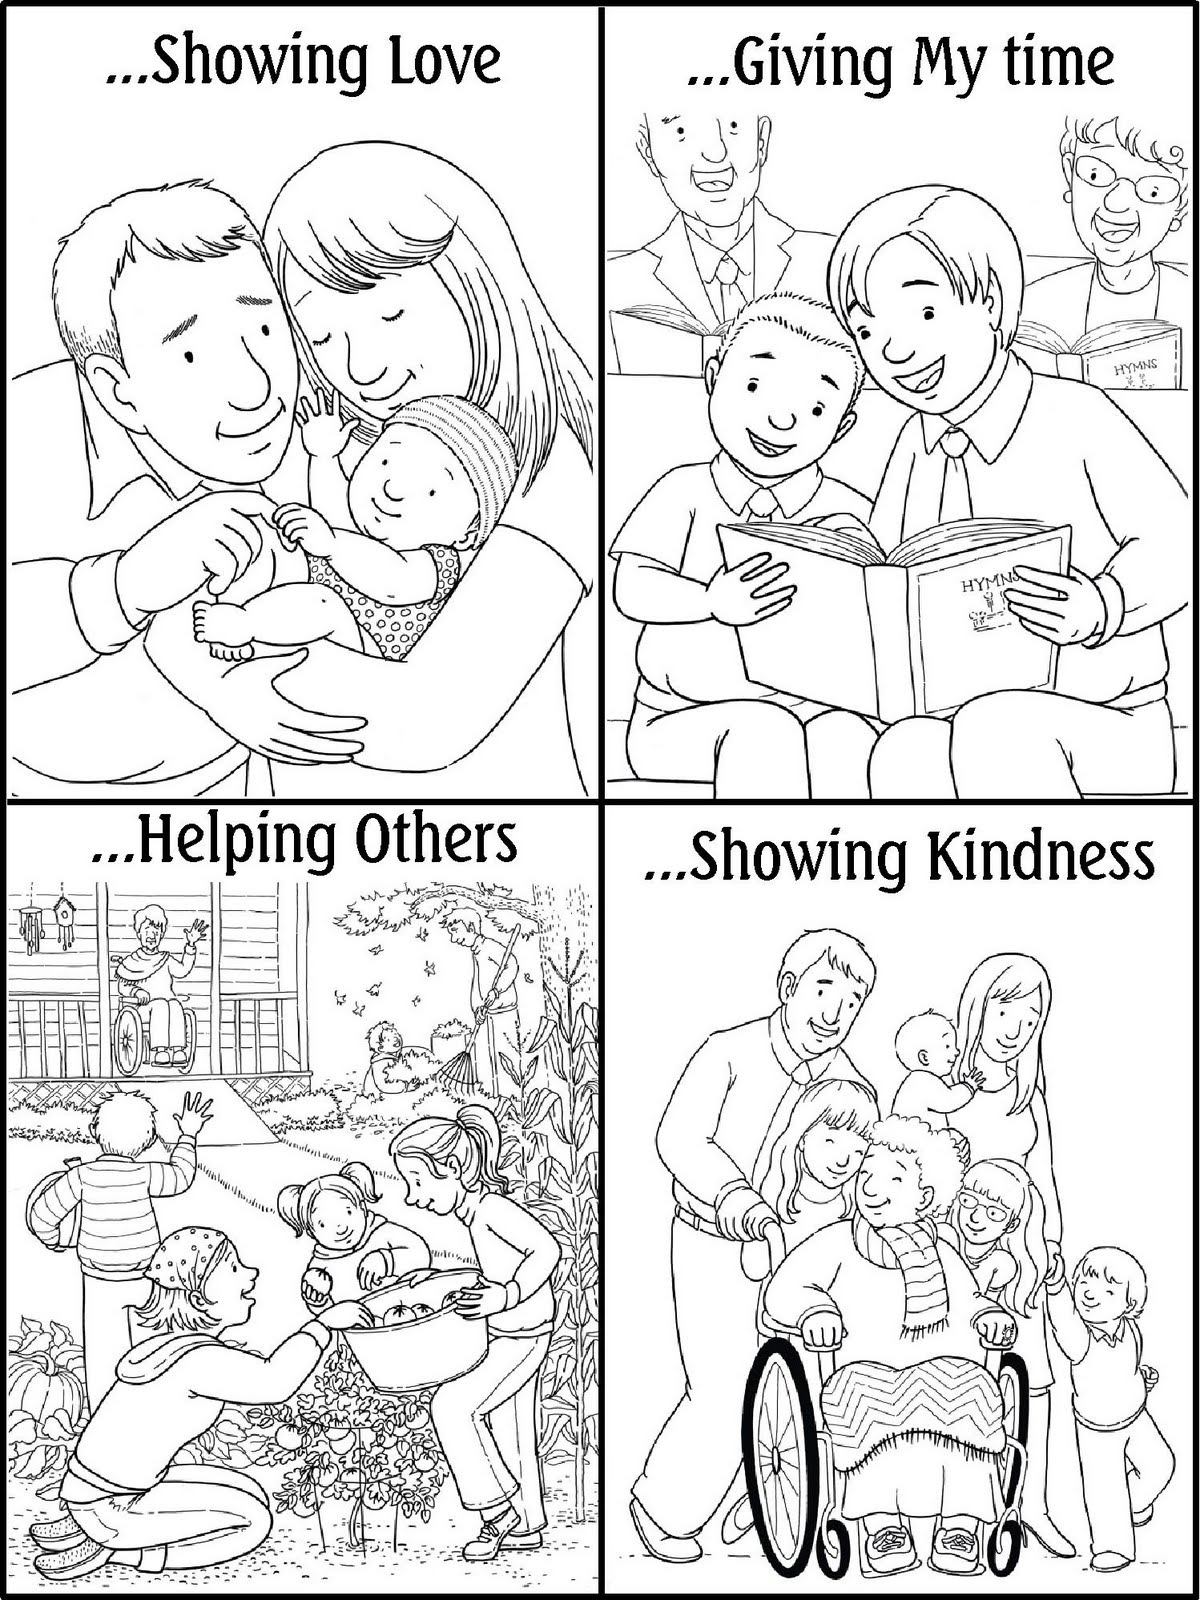 Free Coloring Pages Showing Kindness. Lds coloring pages to download and print for free